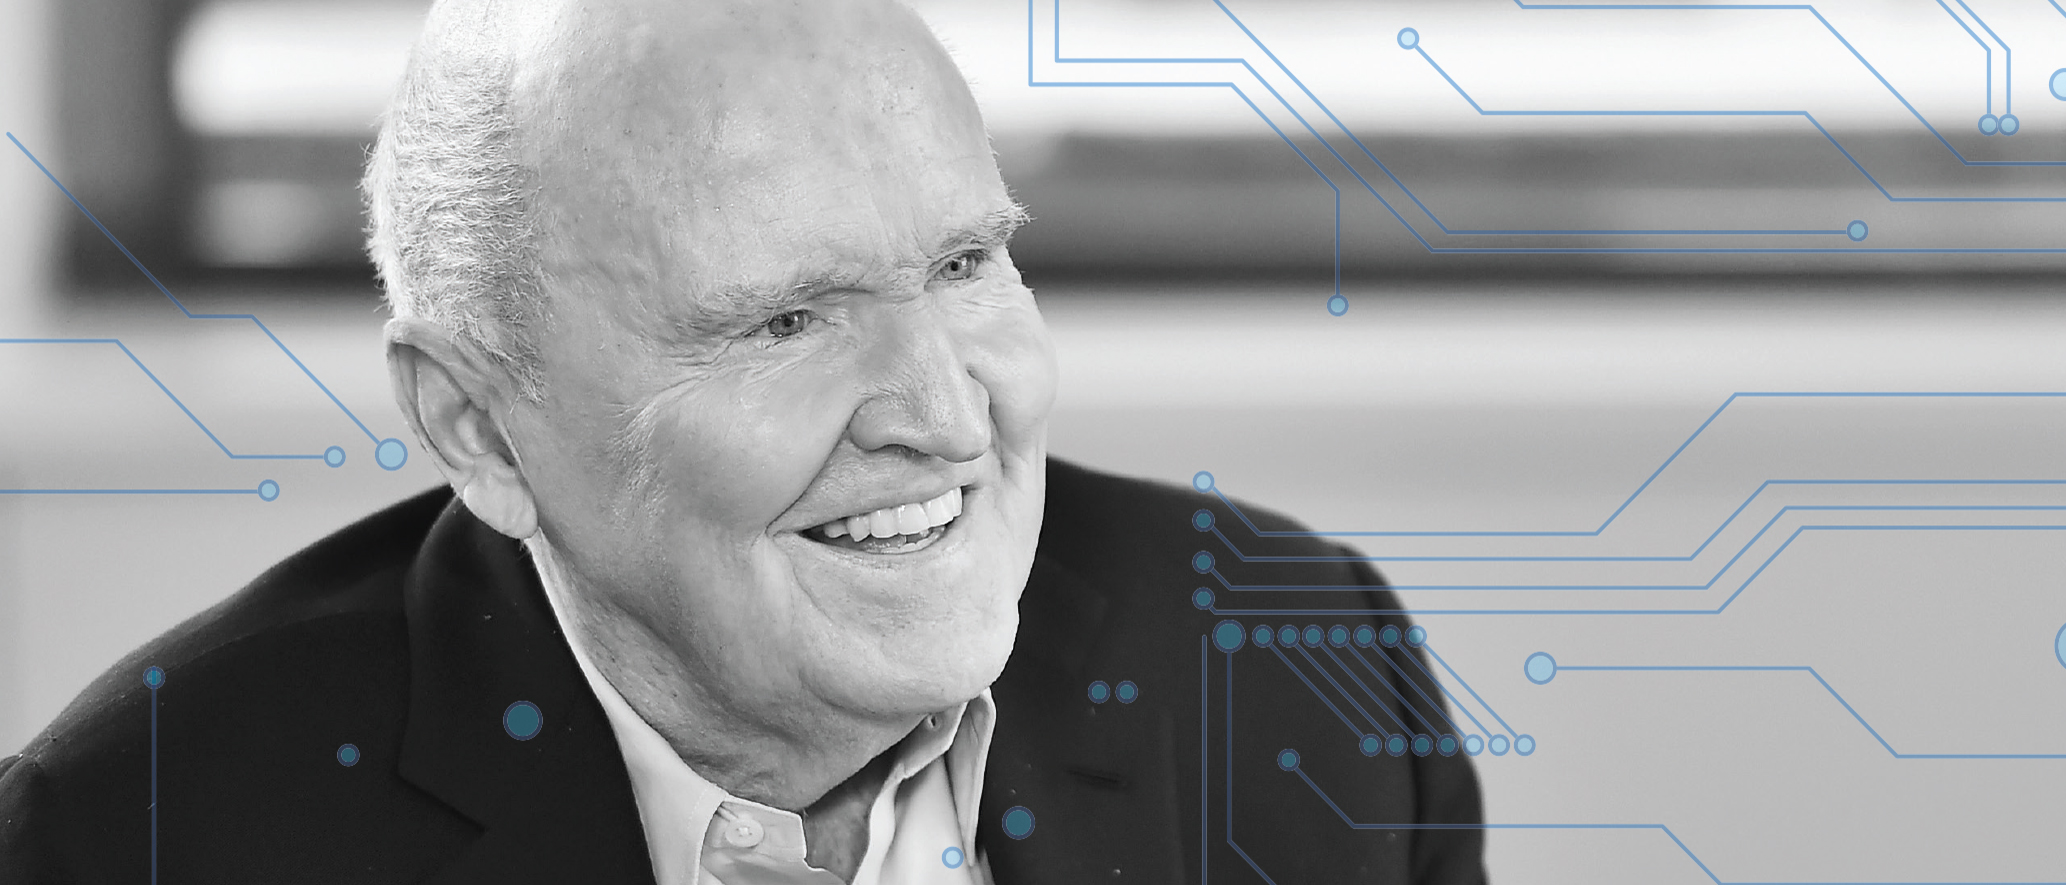 Jack Welch laughs